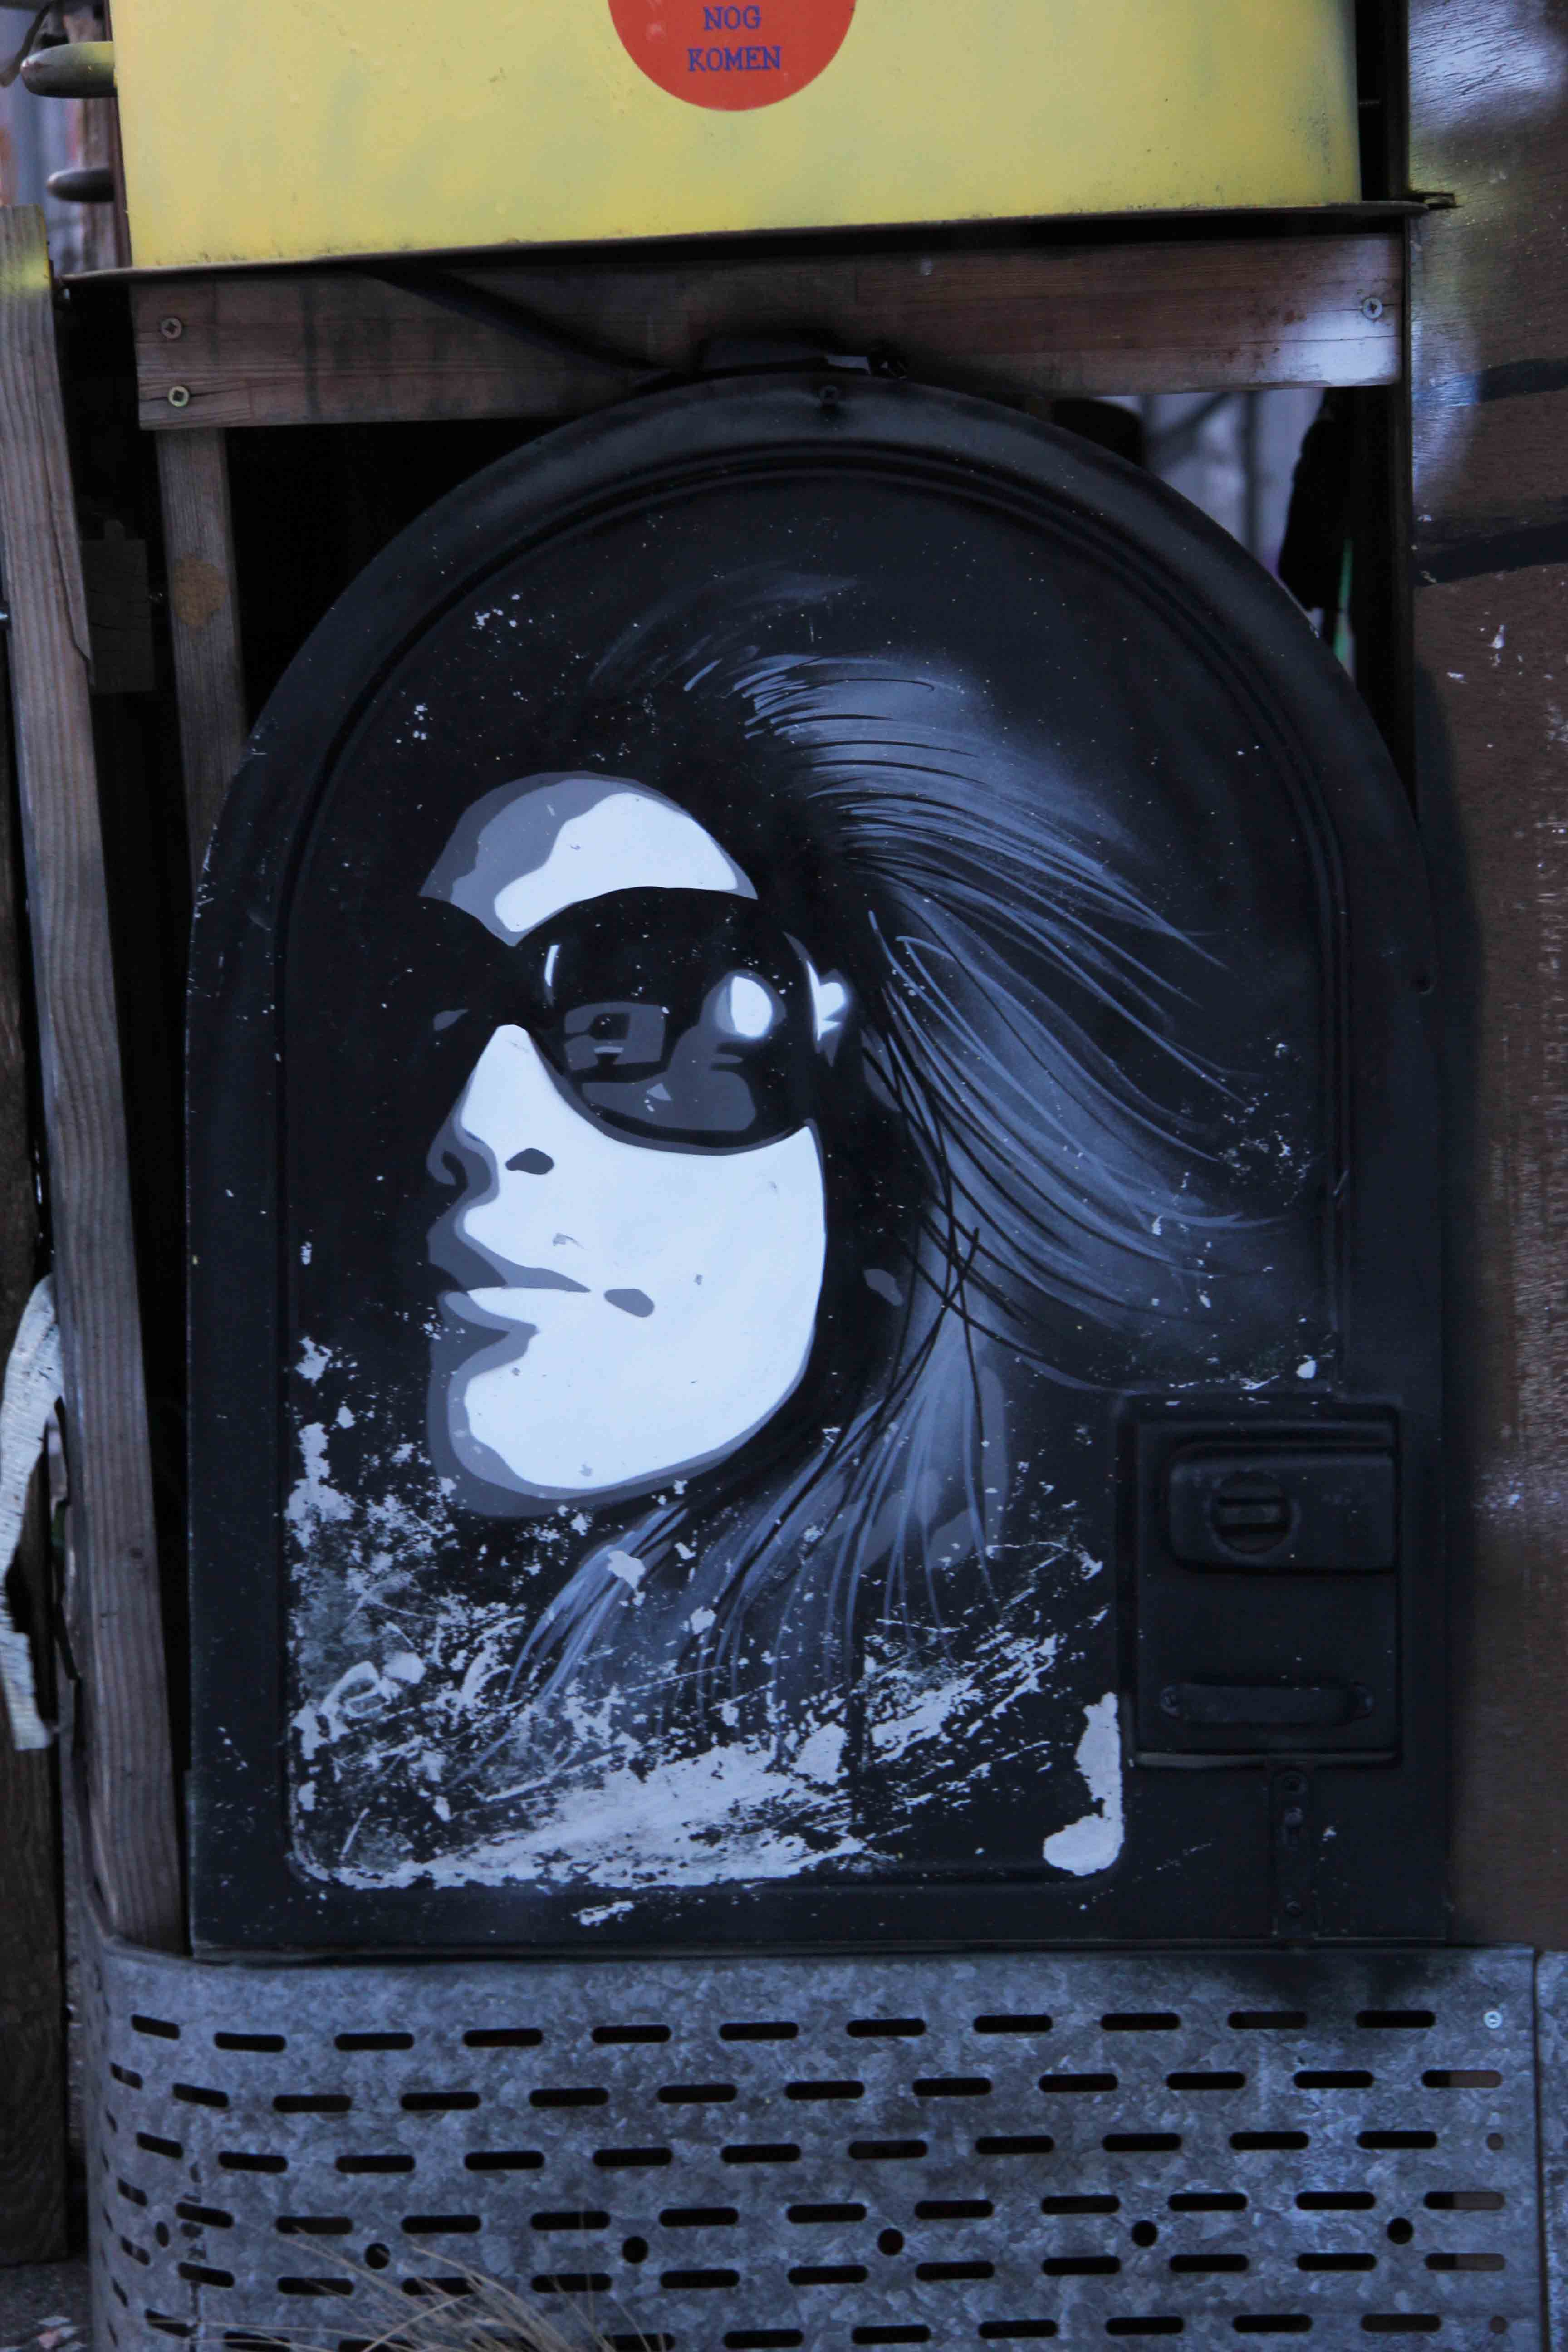 Woman in Sunglasses - Street Art by KEN (aka Plotterroboter or Plotbot) at the former NSA Listening Station at Teufelsberg Berlin